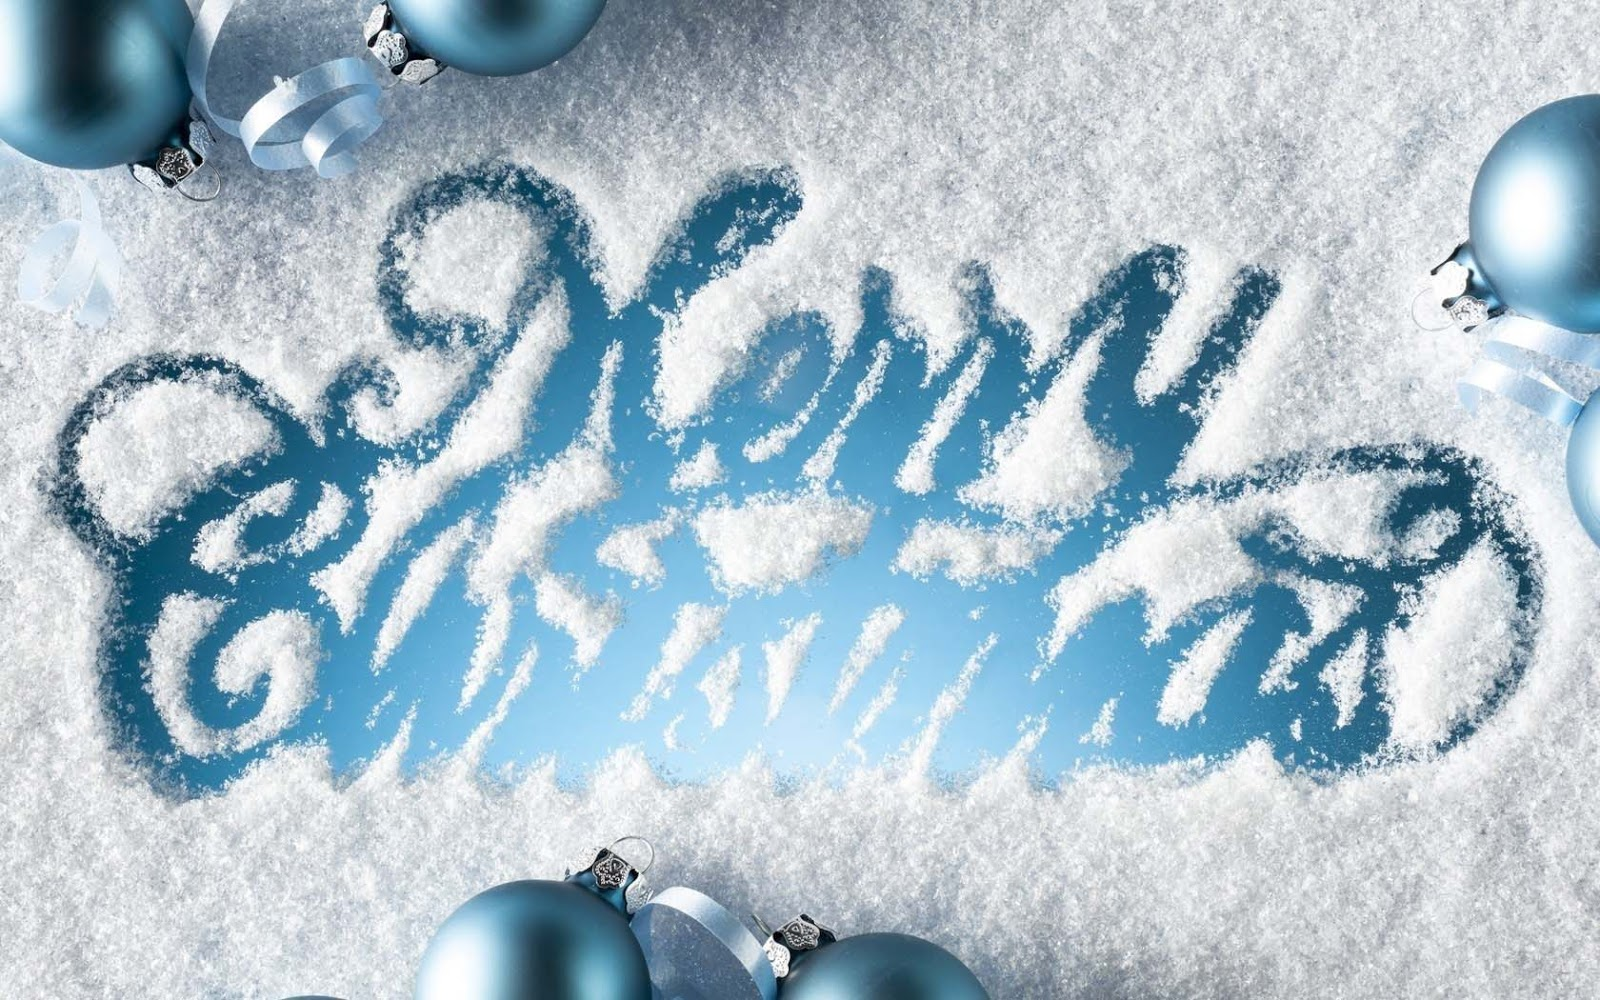 Happy Christmas Facebook Cover Photos - Xmas FB Timeline Images Free ...